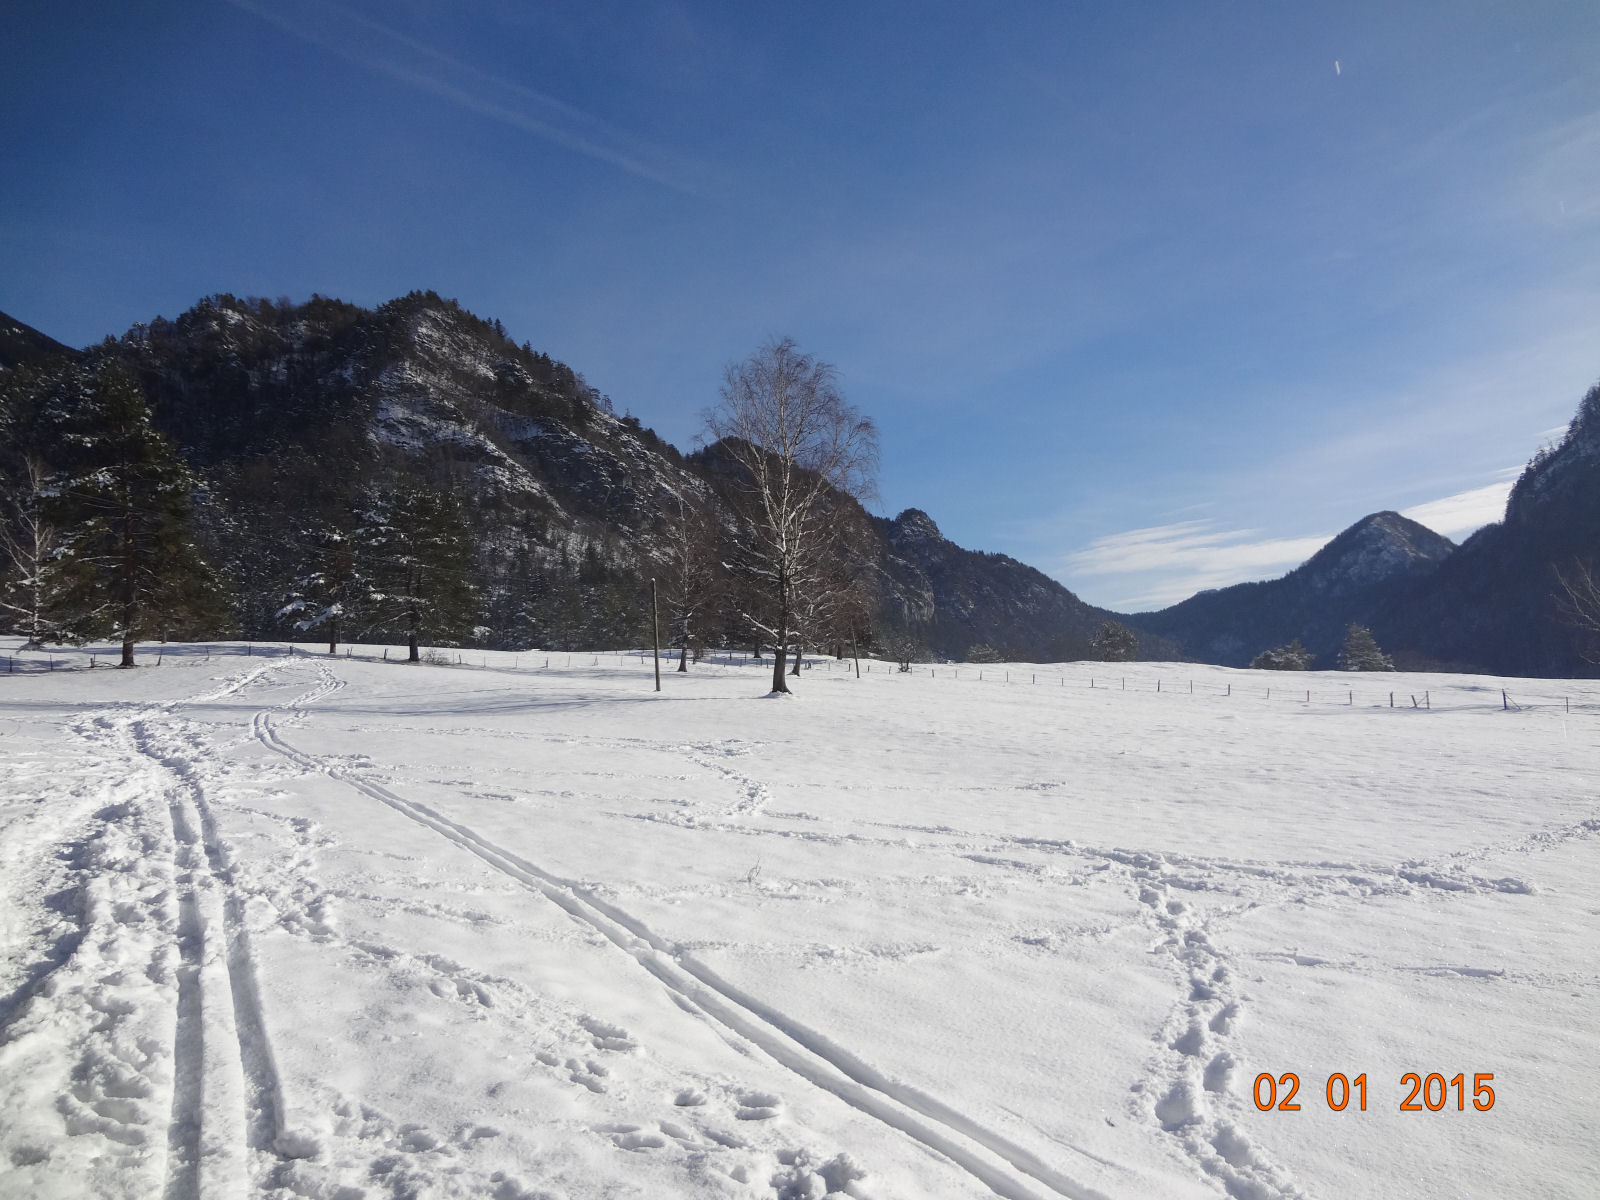 Ski trails in the snow